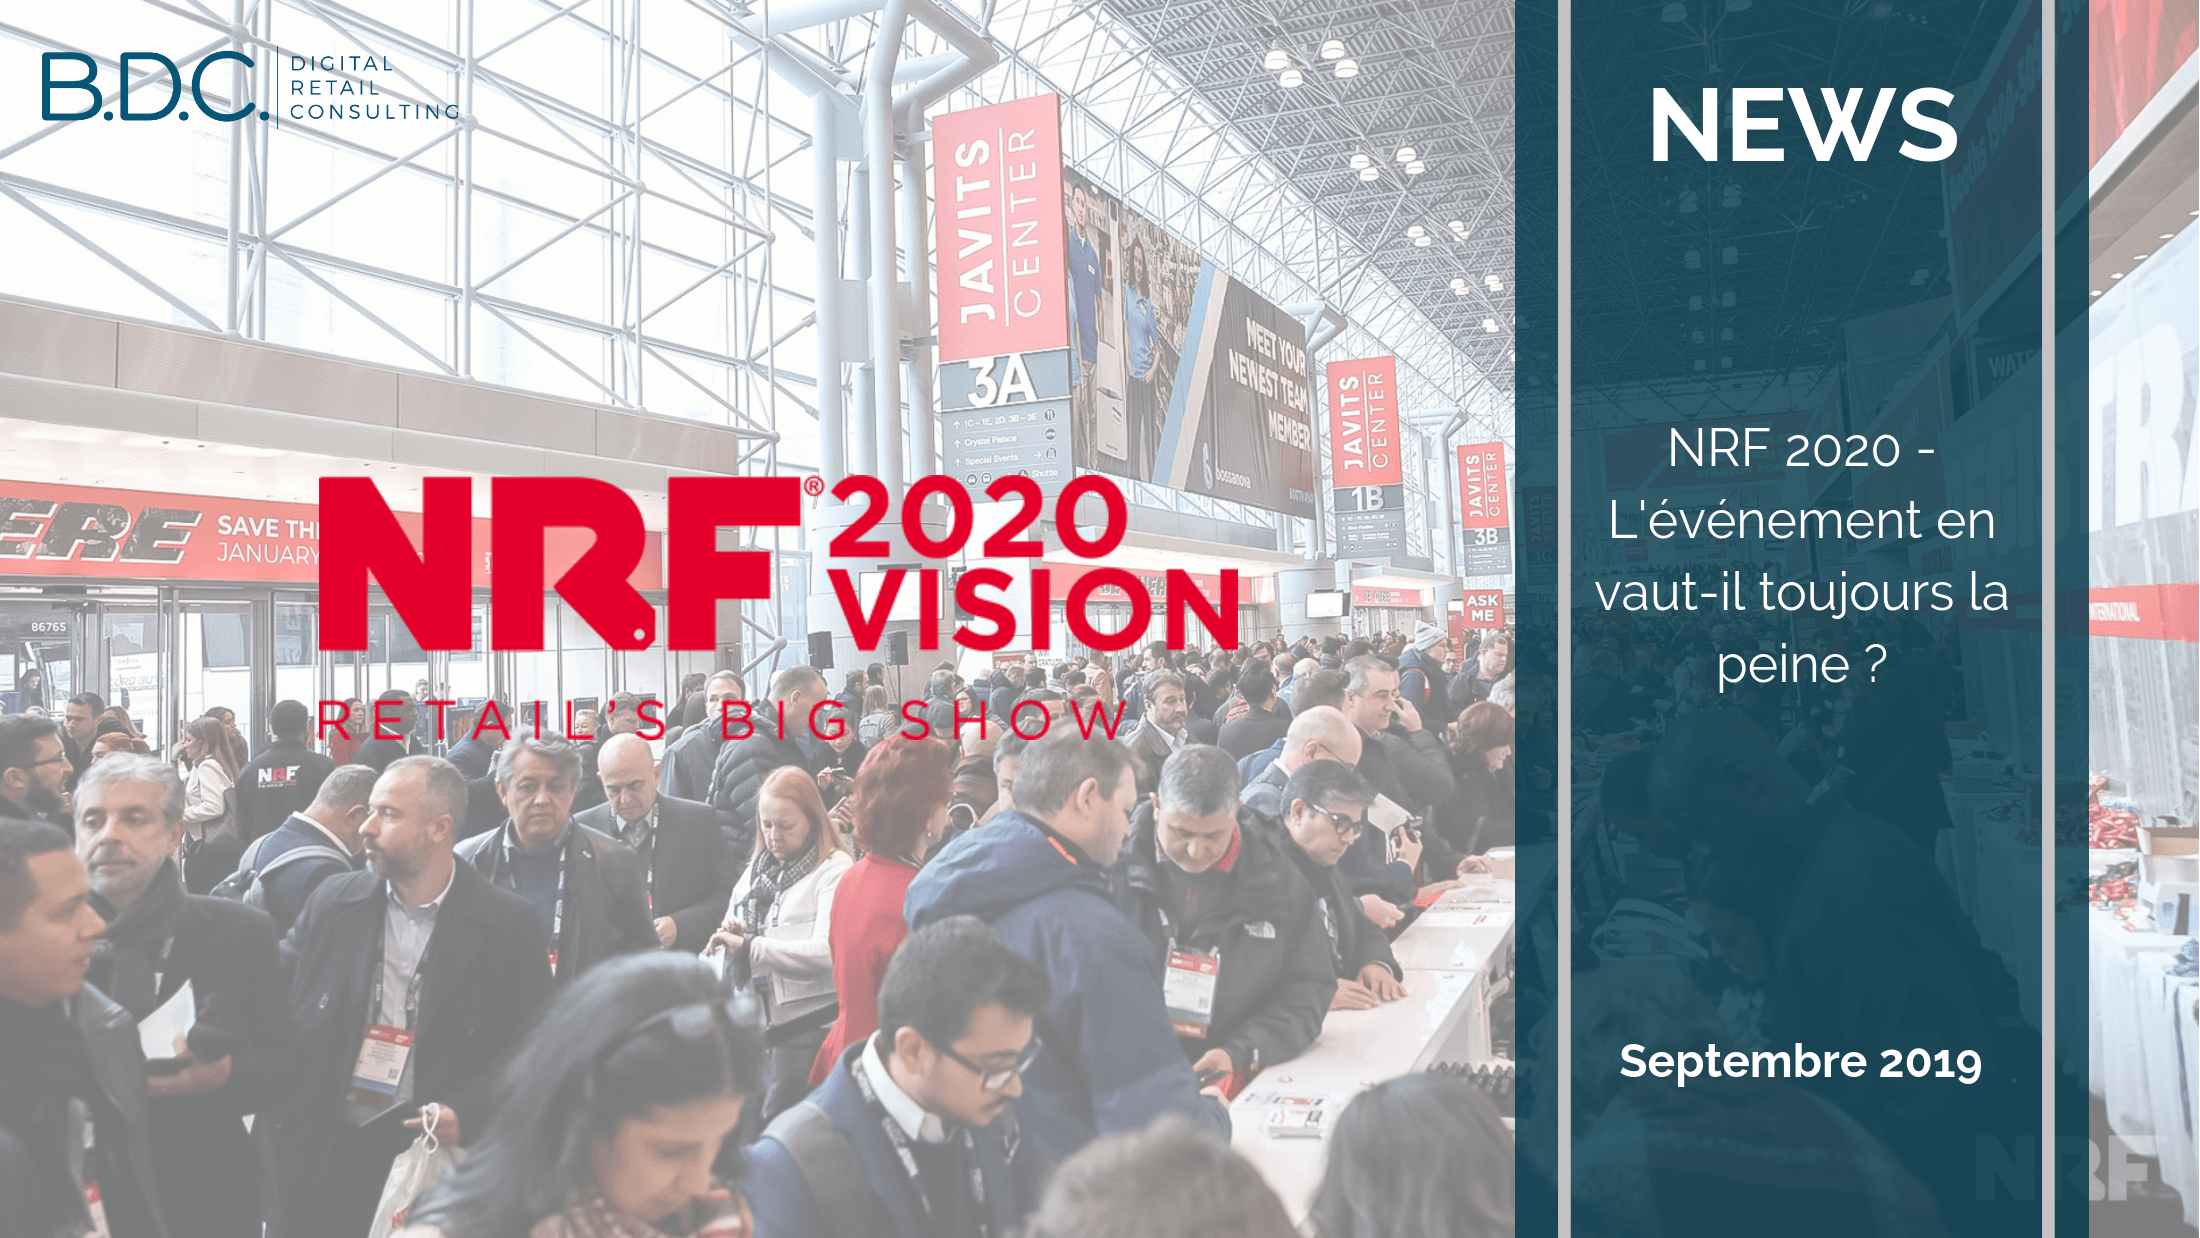 Trends News suite 4 - NRF Retail's Big Show 2020 - Partez en Learning Expedition avec B.D.C.